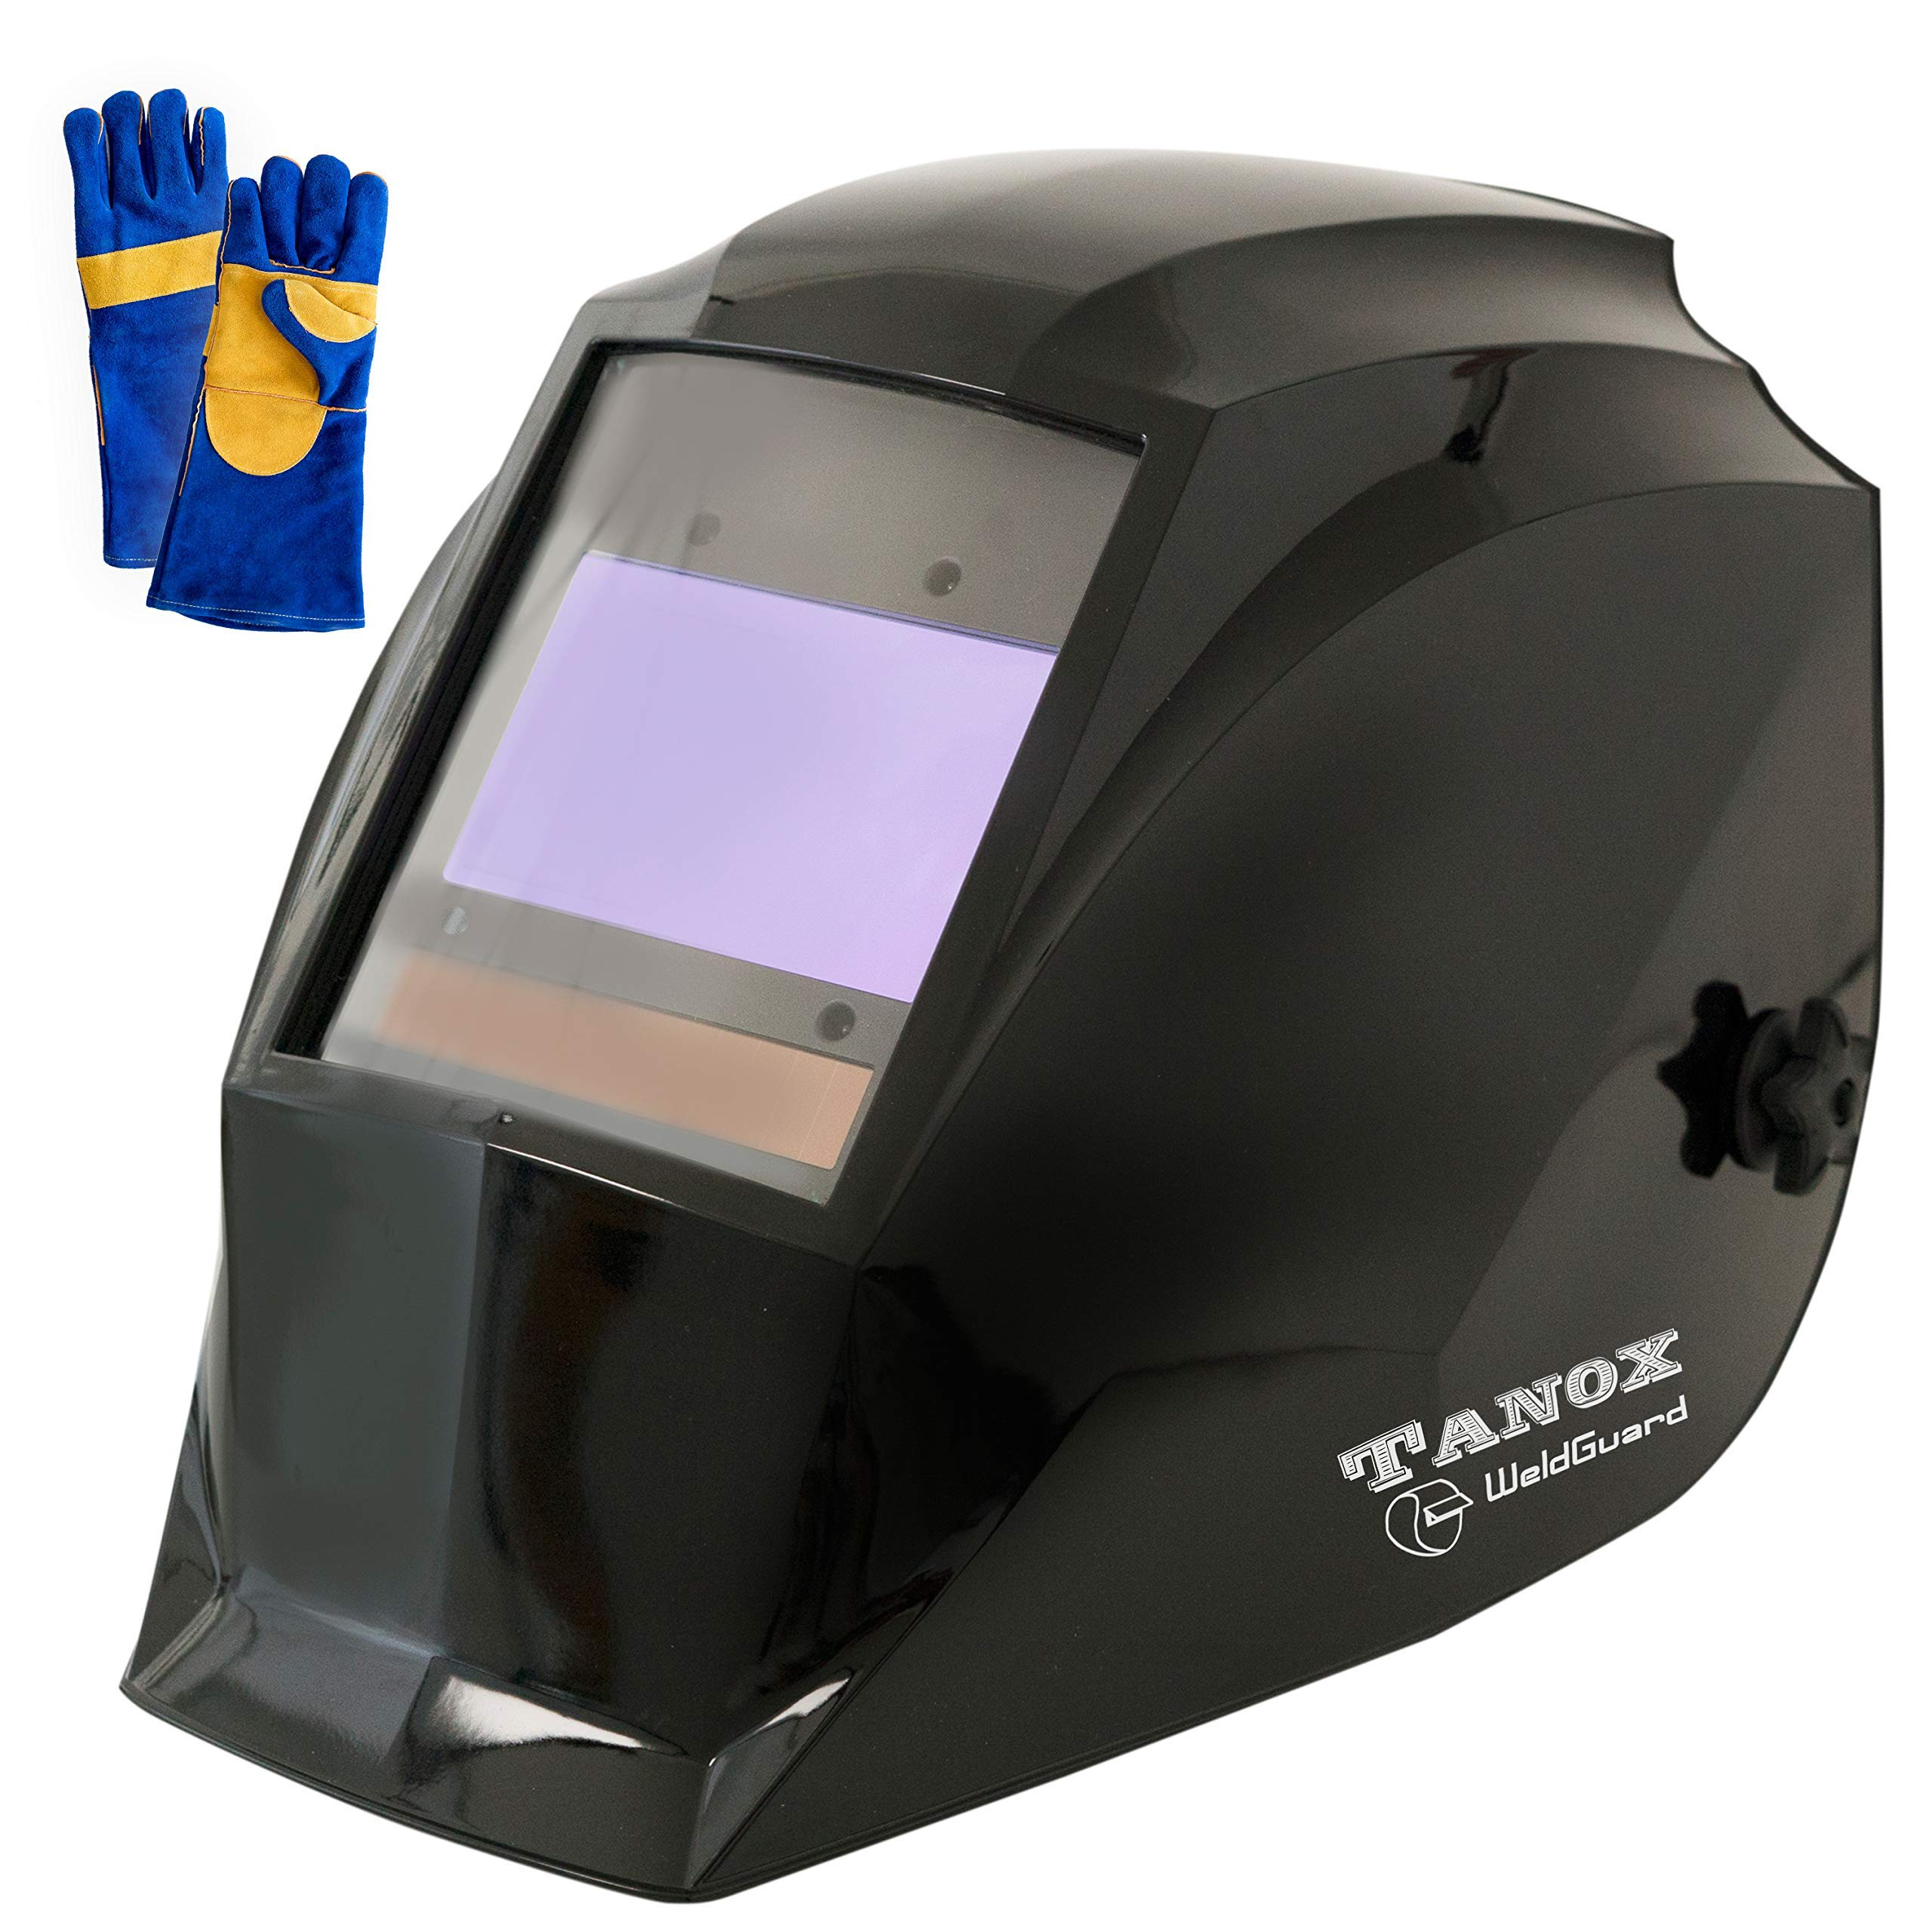 Digital Control Auto Darkening Solar Powered Welding Helmet ADF-210S, Solar Shade Lens, Tig Mig MMA, Adjustable Range 4/9-1316 Bonus 16'' Fire Retardant Welding Gloves, Carrying Bag and Spare Lens by TANOX (Image #1)